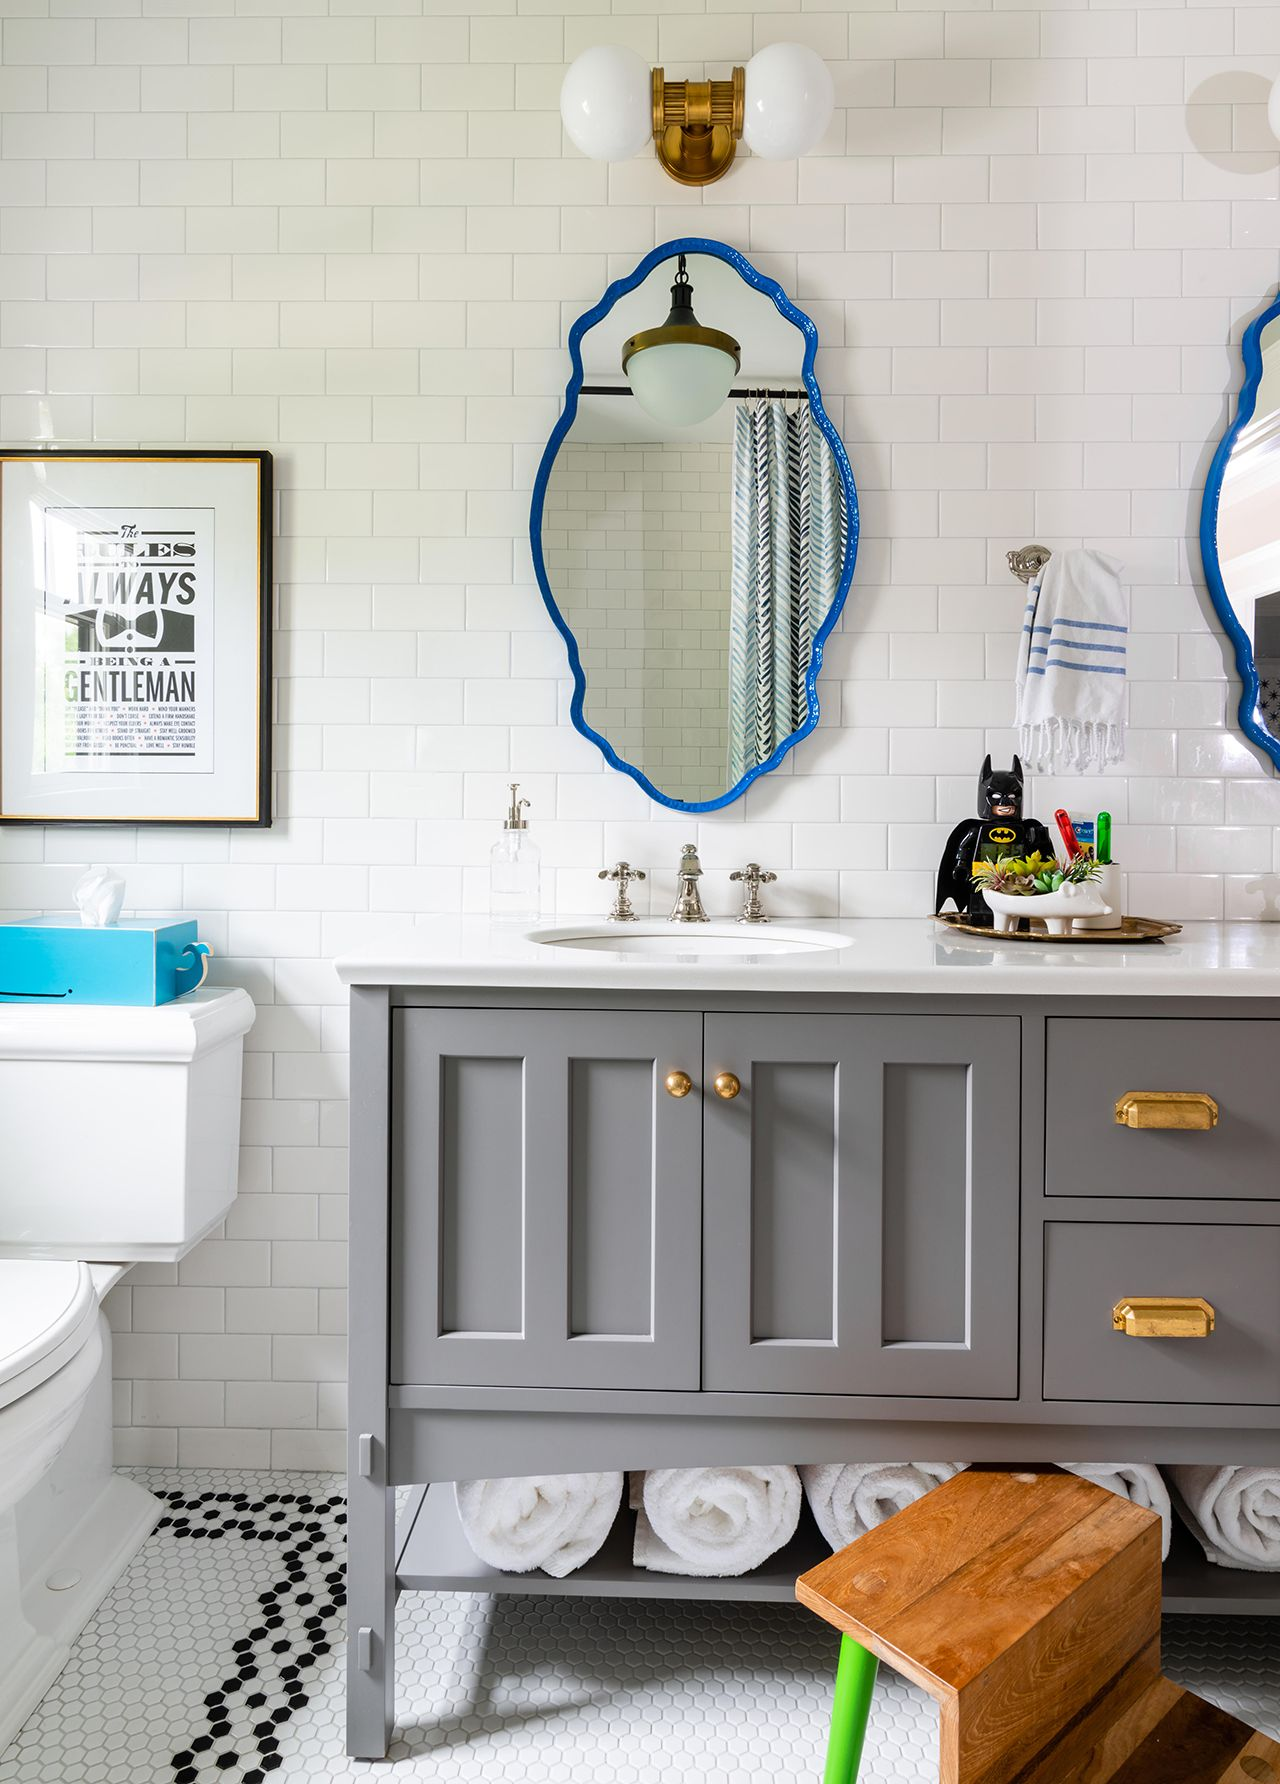 19 Budget Friendly Home Renovation Ideas For Every Room In Your House In 2020 Grey Wall Decor Decor Decorating Bathroom